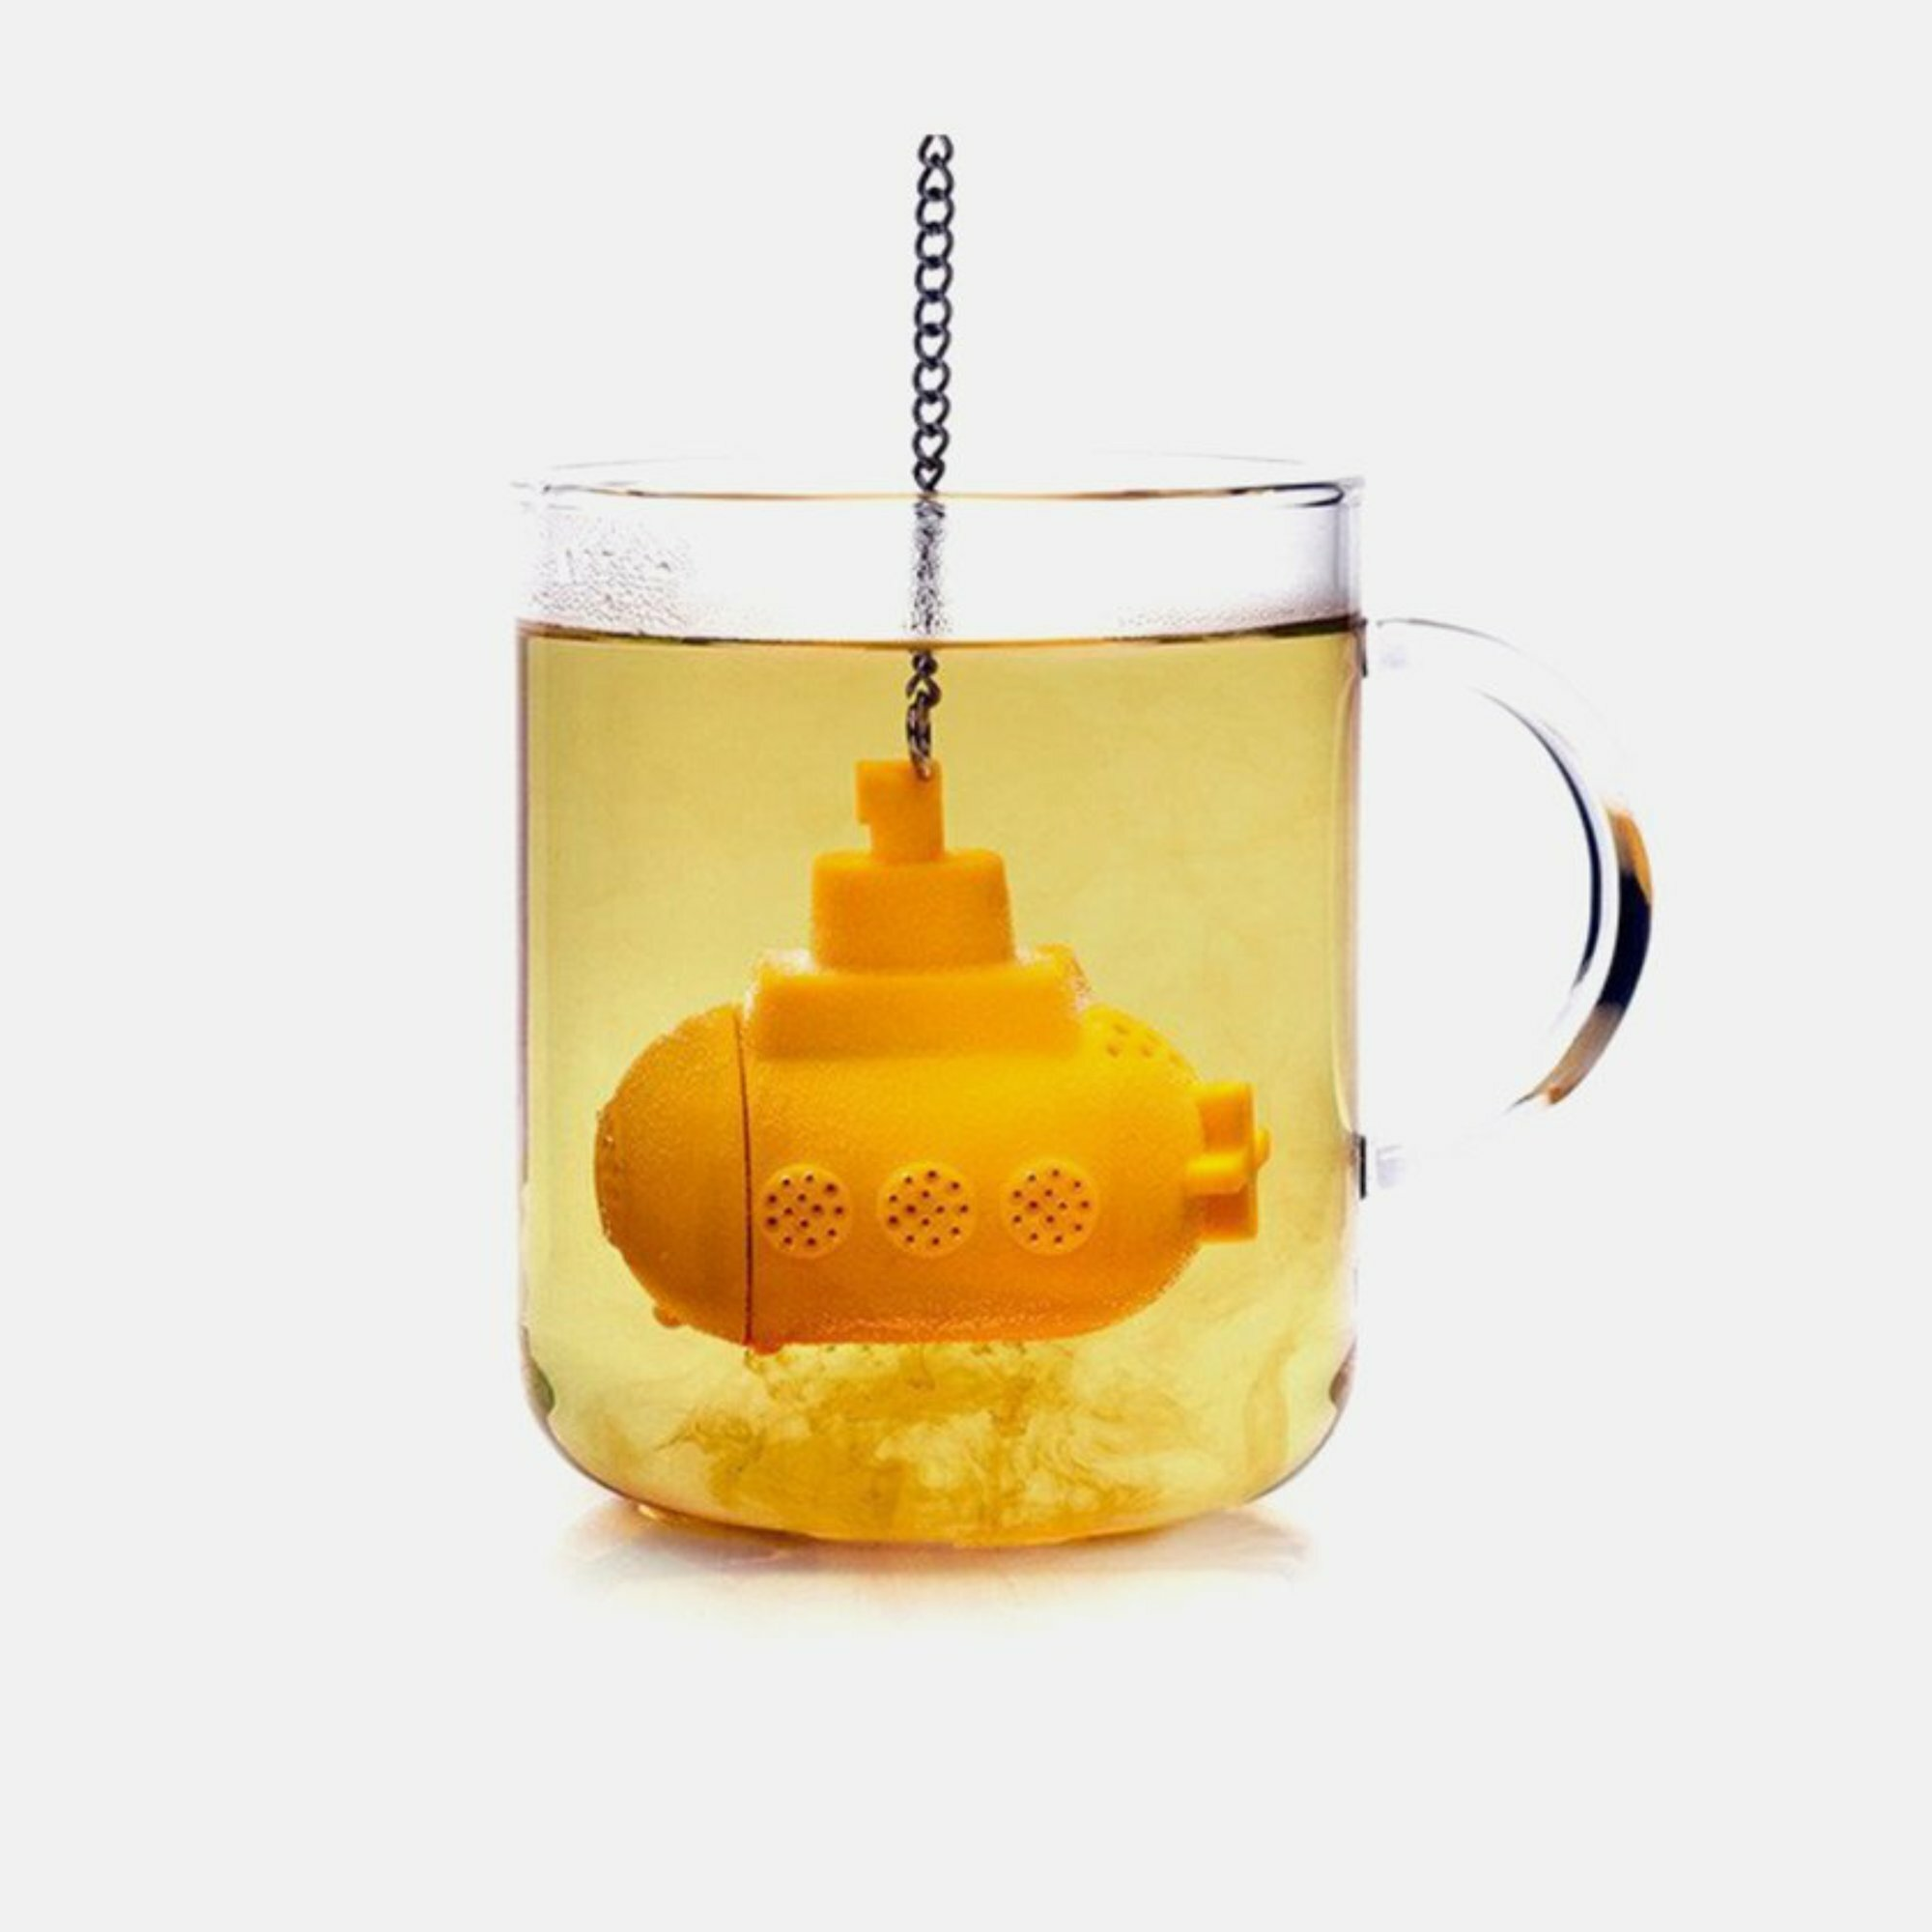 Tea sub tea infuser from Homeless